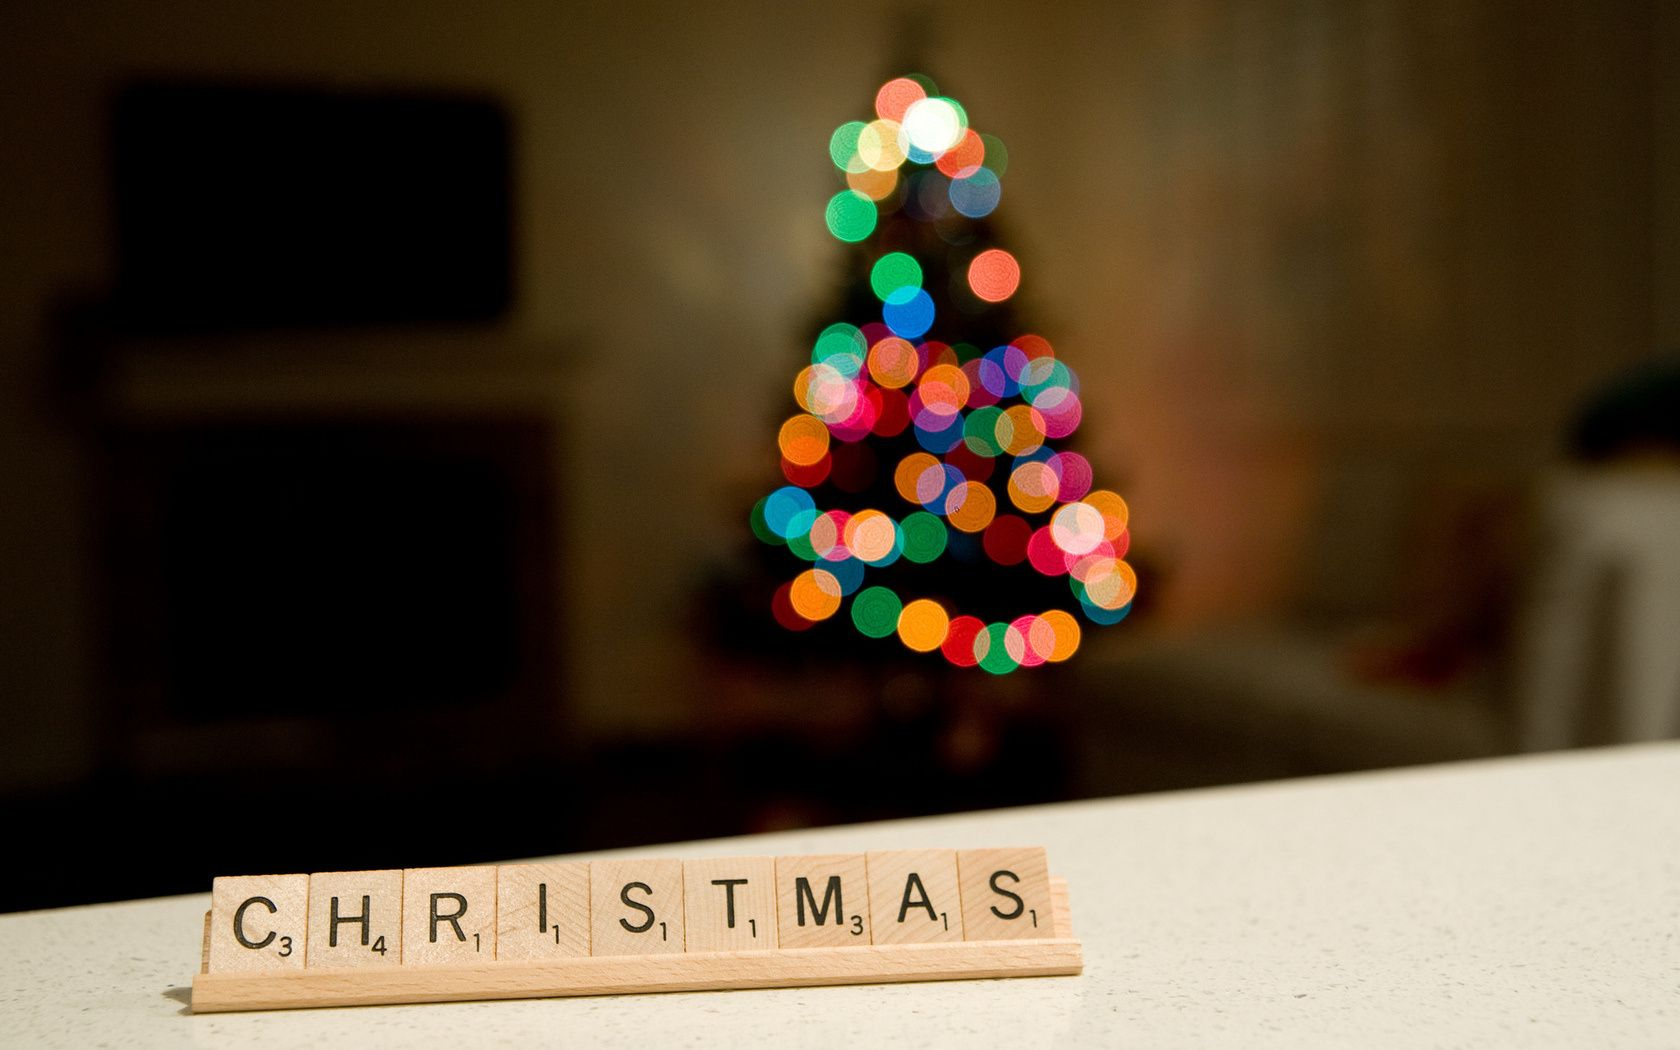 Blurry Christmas Tree Background , HD Wallpaper & Backgrounds